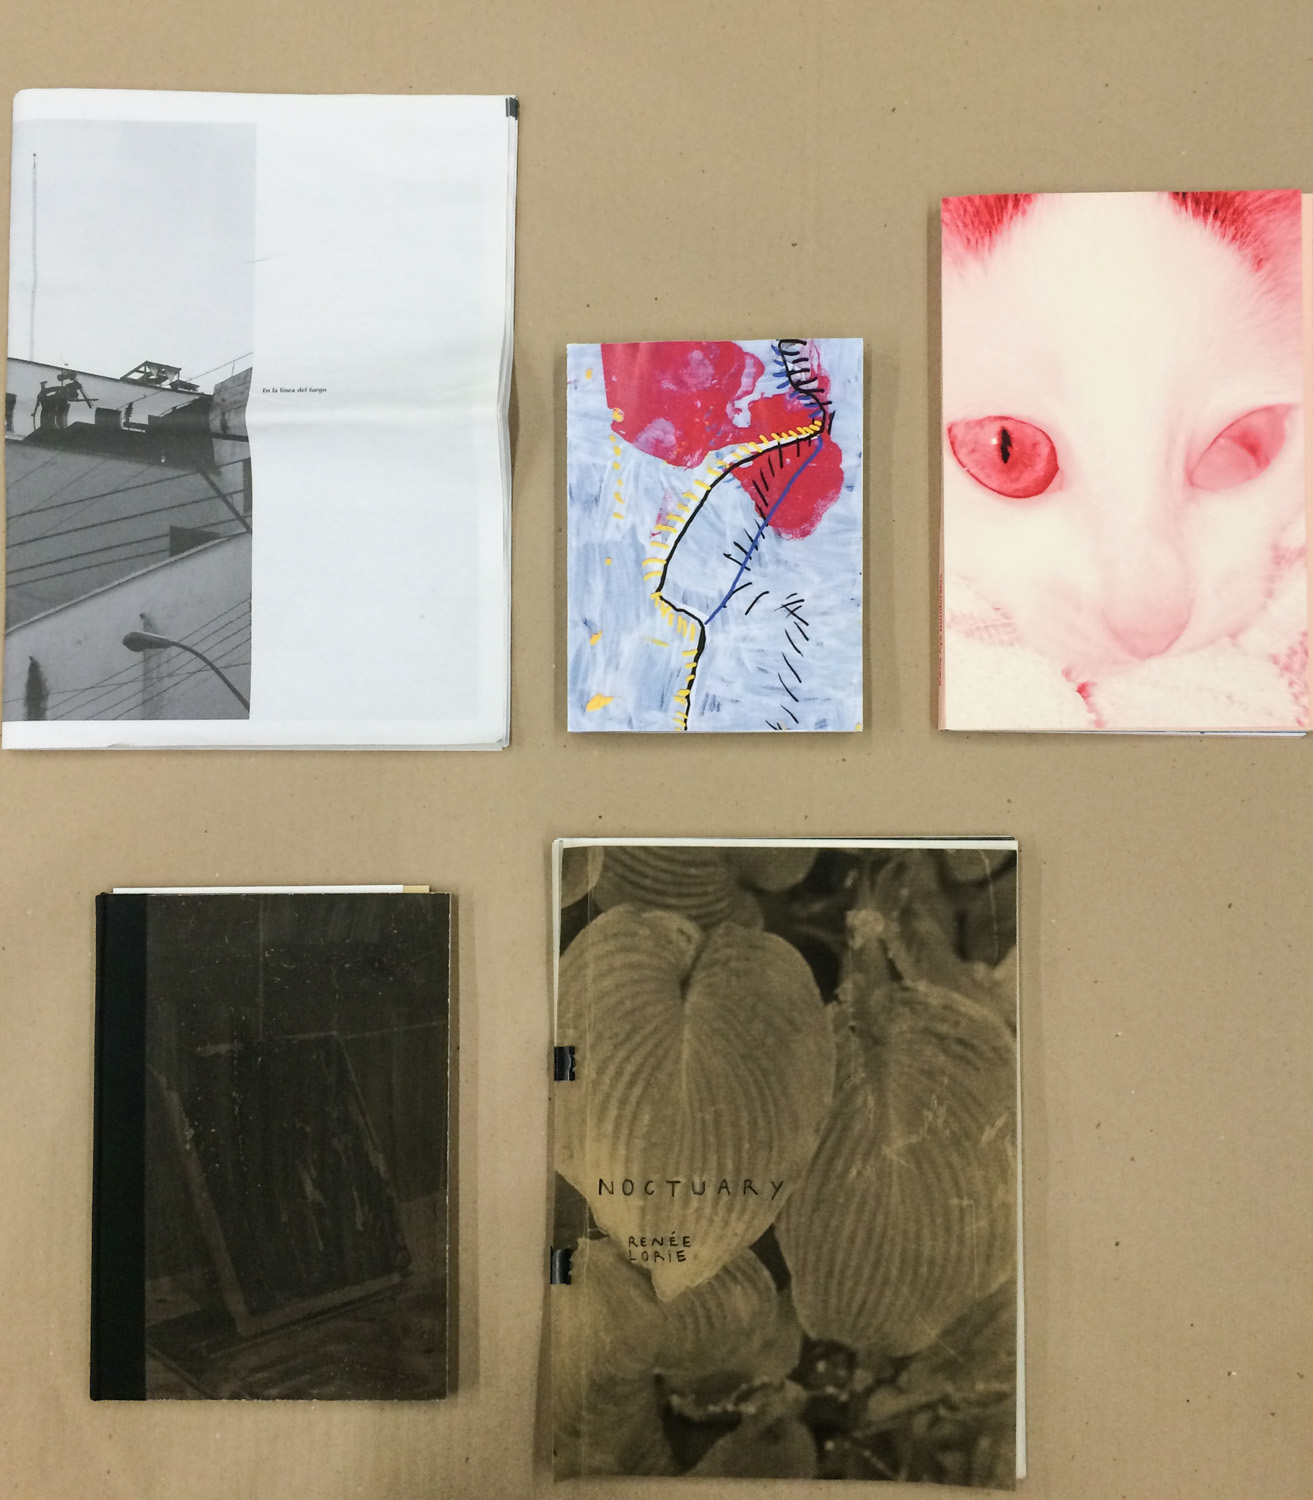 """From left to right: """"En la linea de fuego"""" by Anastasia Mityukova, """"Here, Waiting"""" by Maroussia Prignot and Valerio Alvarez, """"Eating Magma"""" by Elena Aya Bundurakis, """"Zilverbeek"""" by Lucas Leffler (winner) and """"Noctuary"""" by Renée Lorie."""